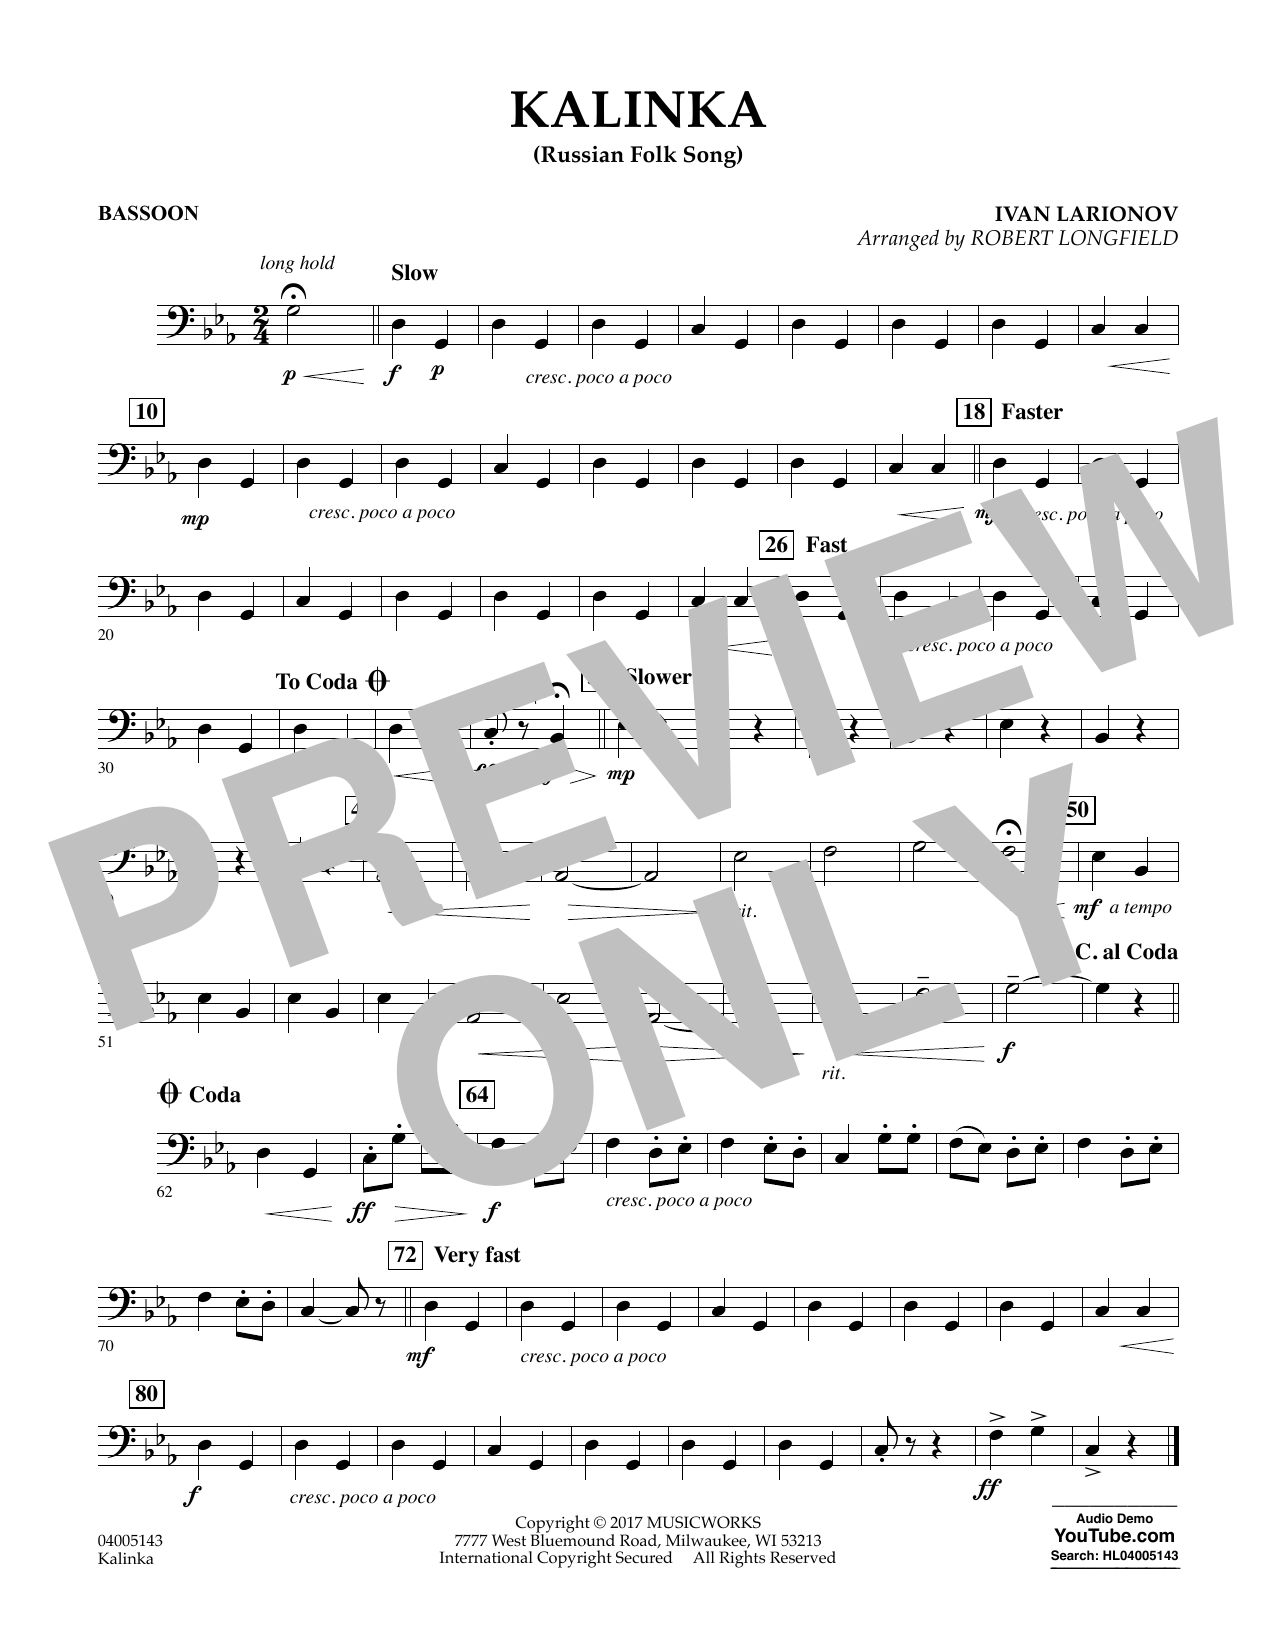 Robert Longfield Kalinka (Russian Folk Song) - Bassoon sheet music notes and chords. Download Printable PDF.